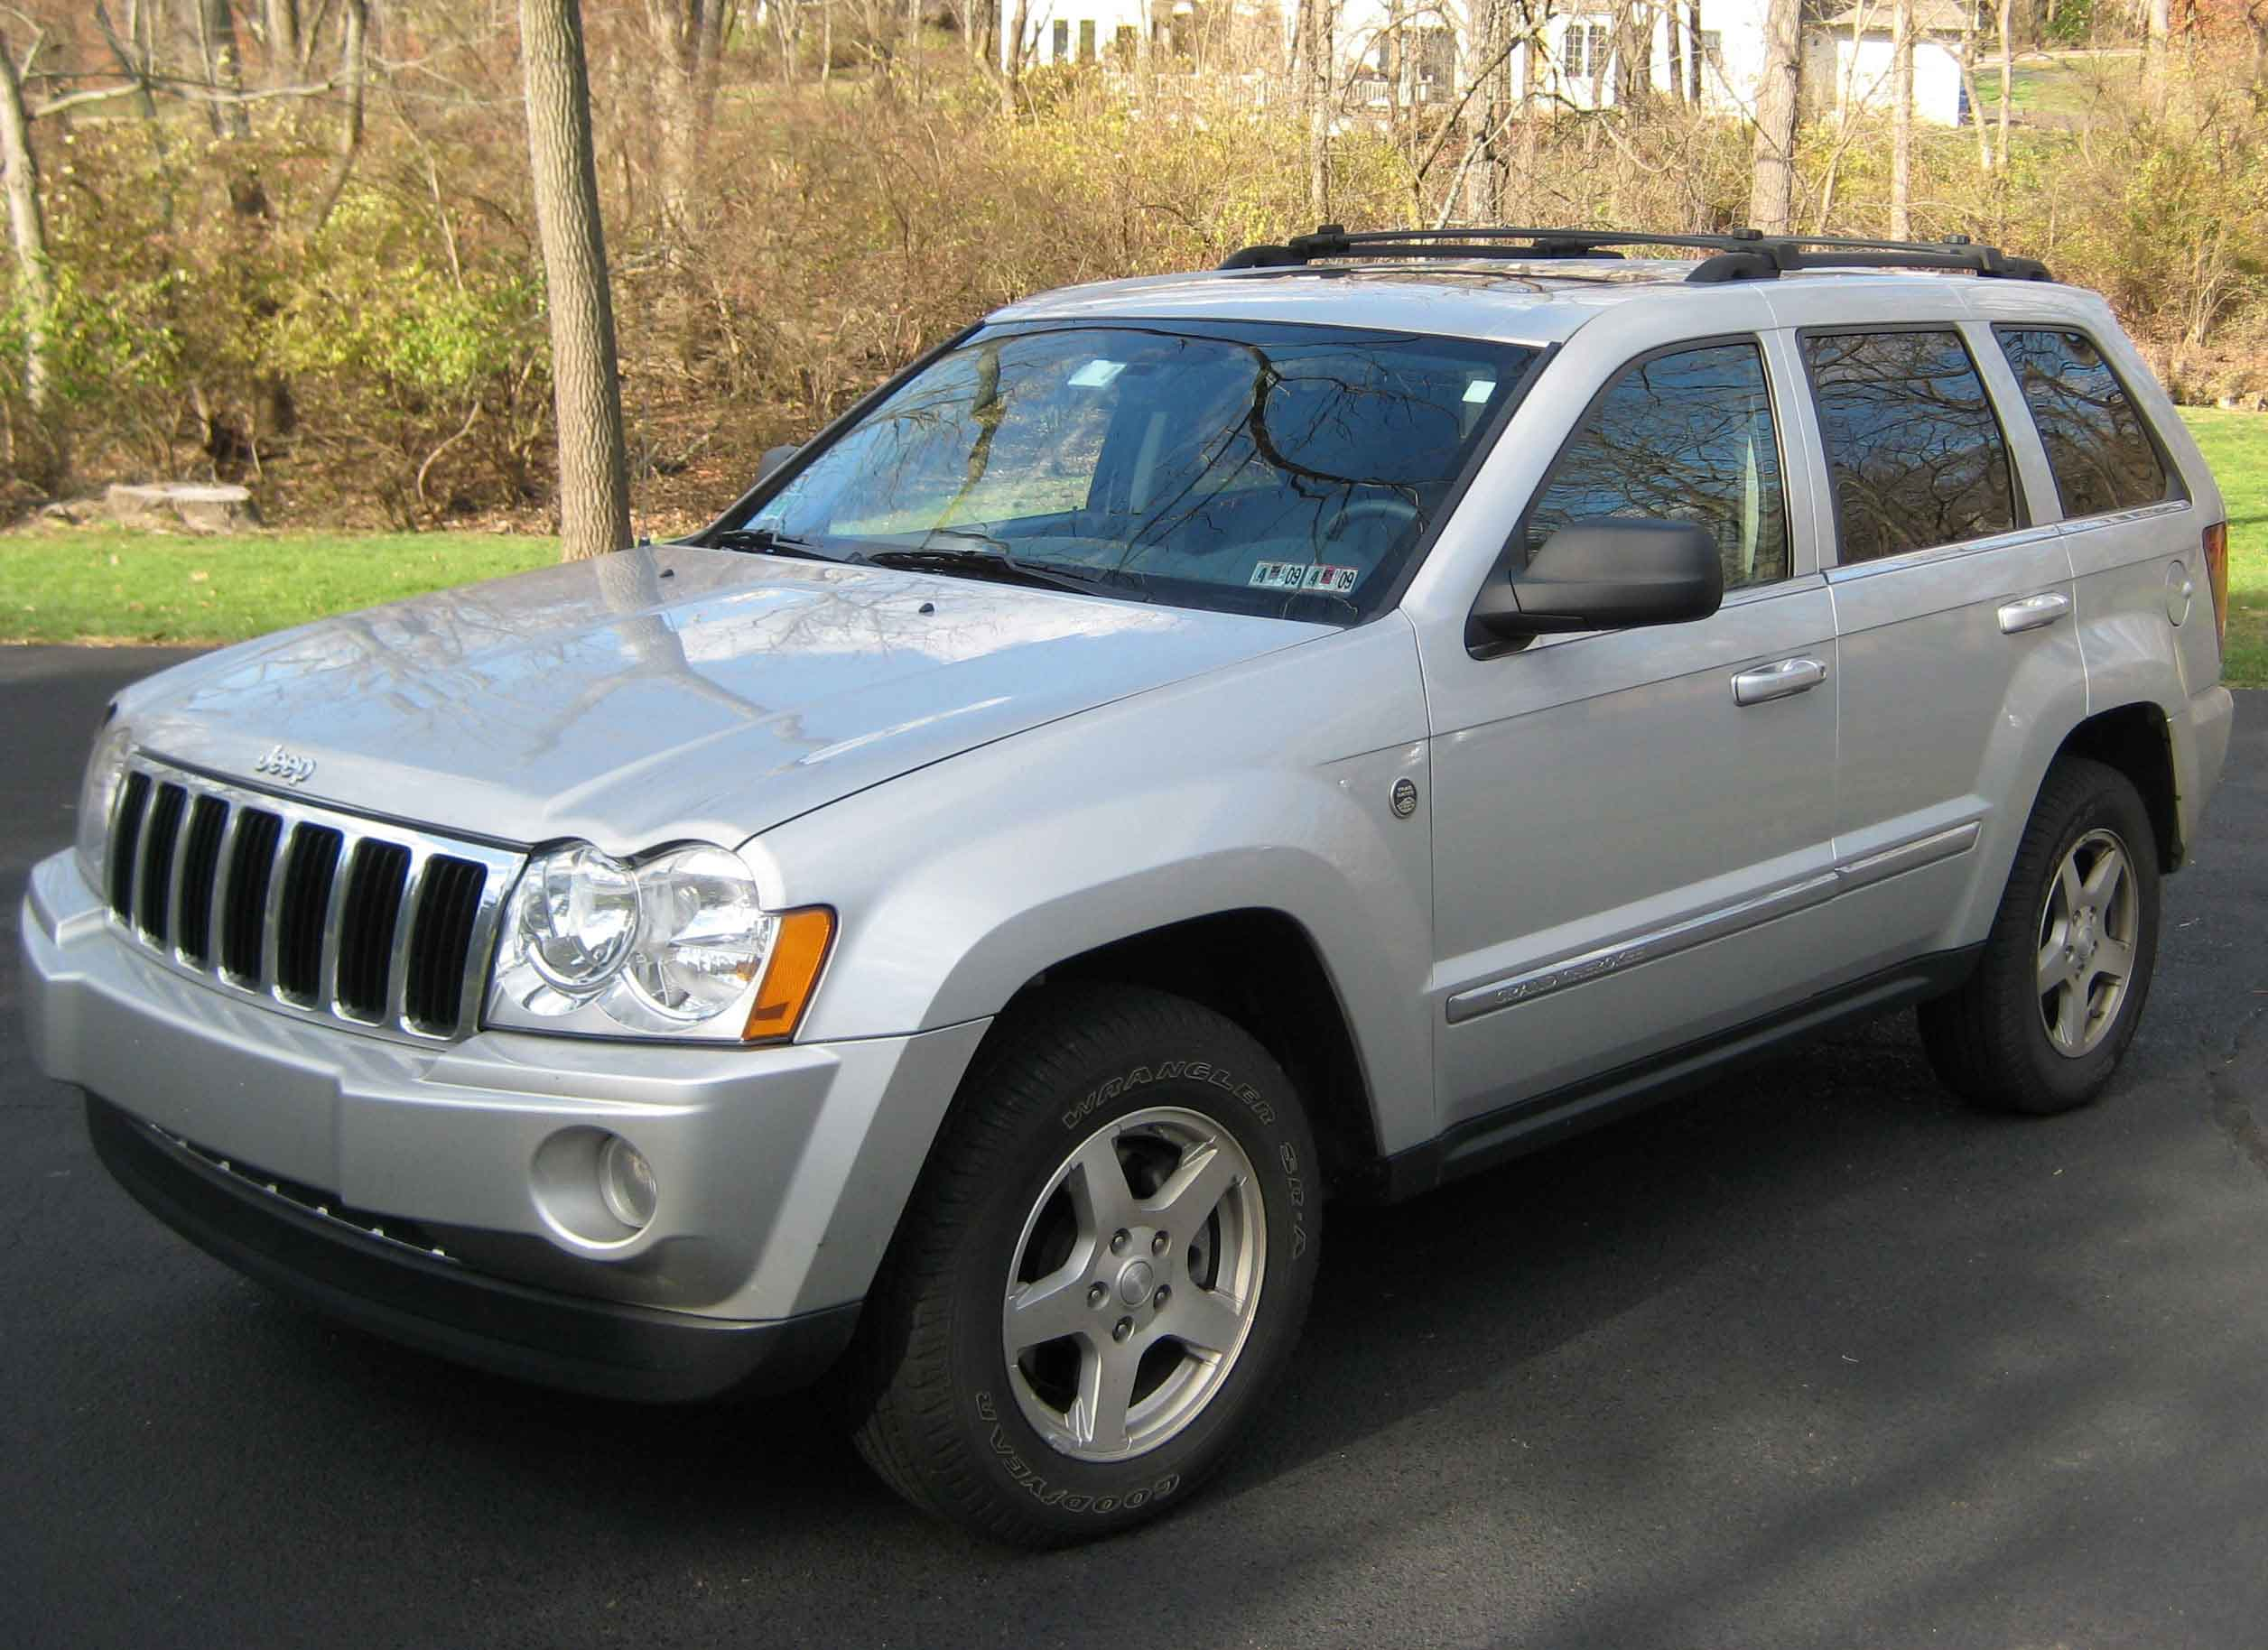 2006 jeep grand cherokee information and photos momentcar. Cars Review. Best American Auto & Cars Review